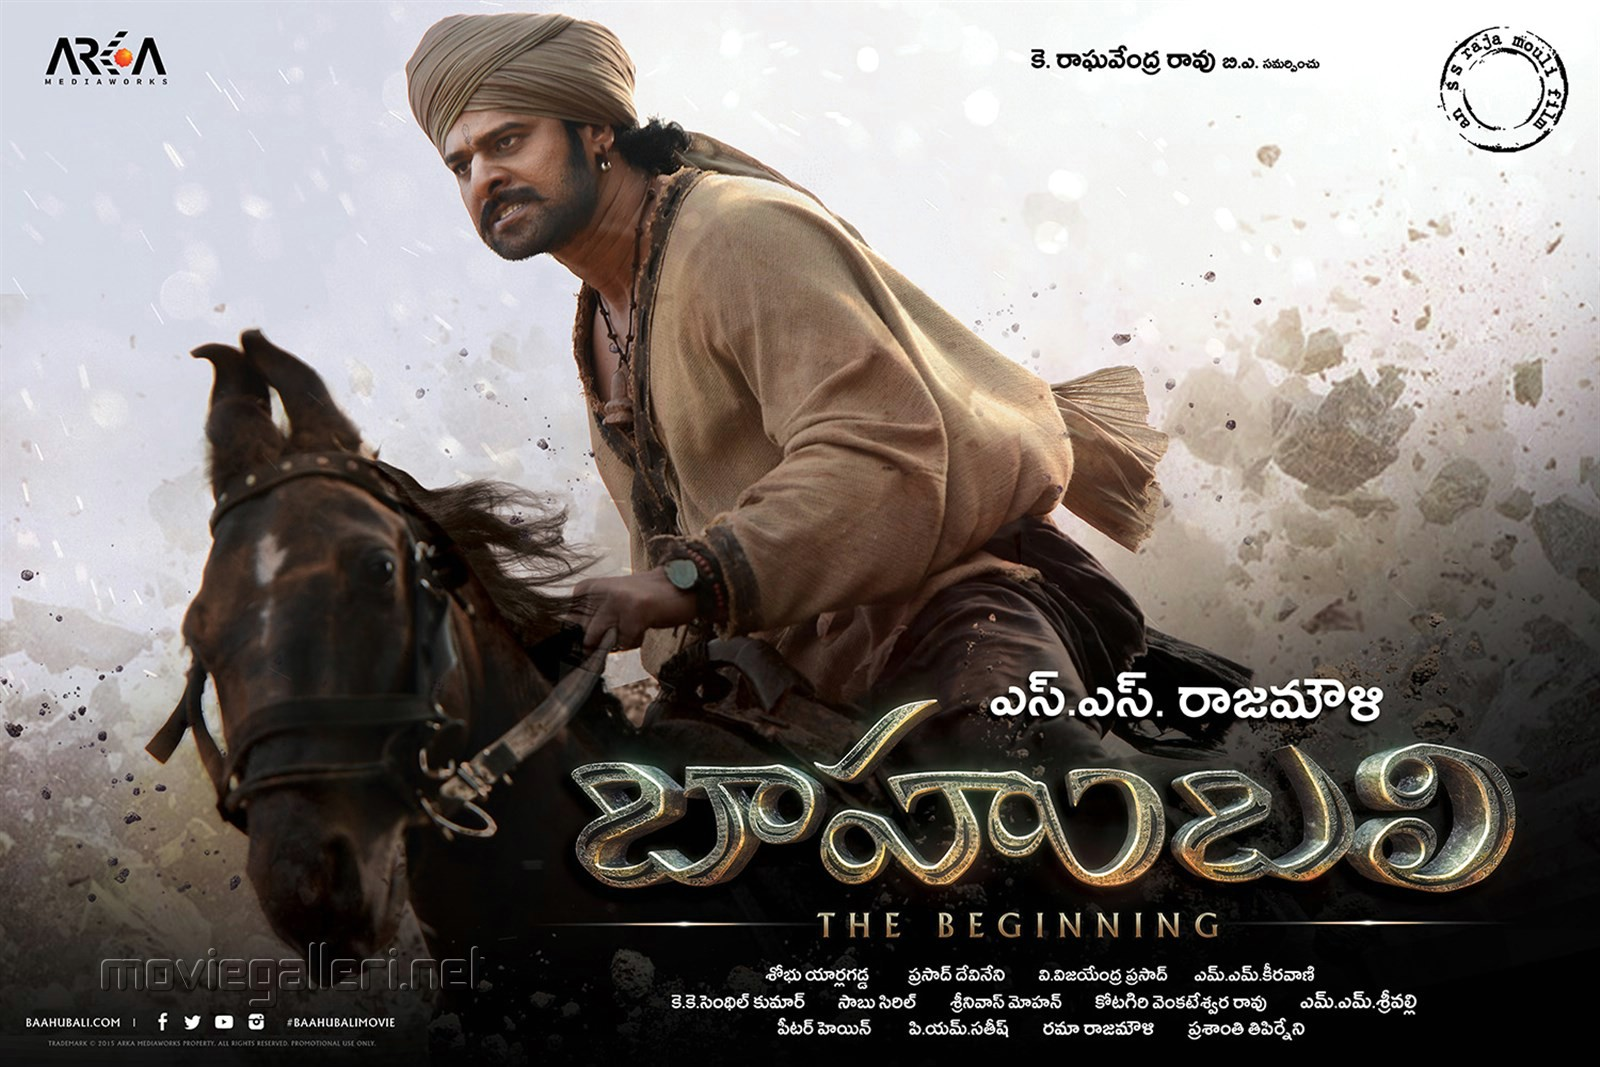 baahu bali prabhas images in bahubali - end stages liver cancer